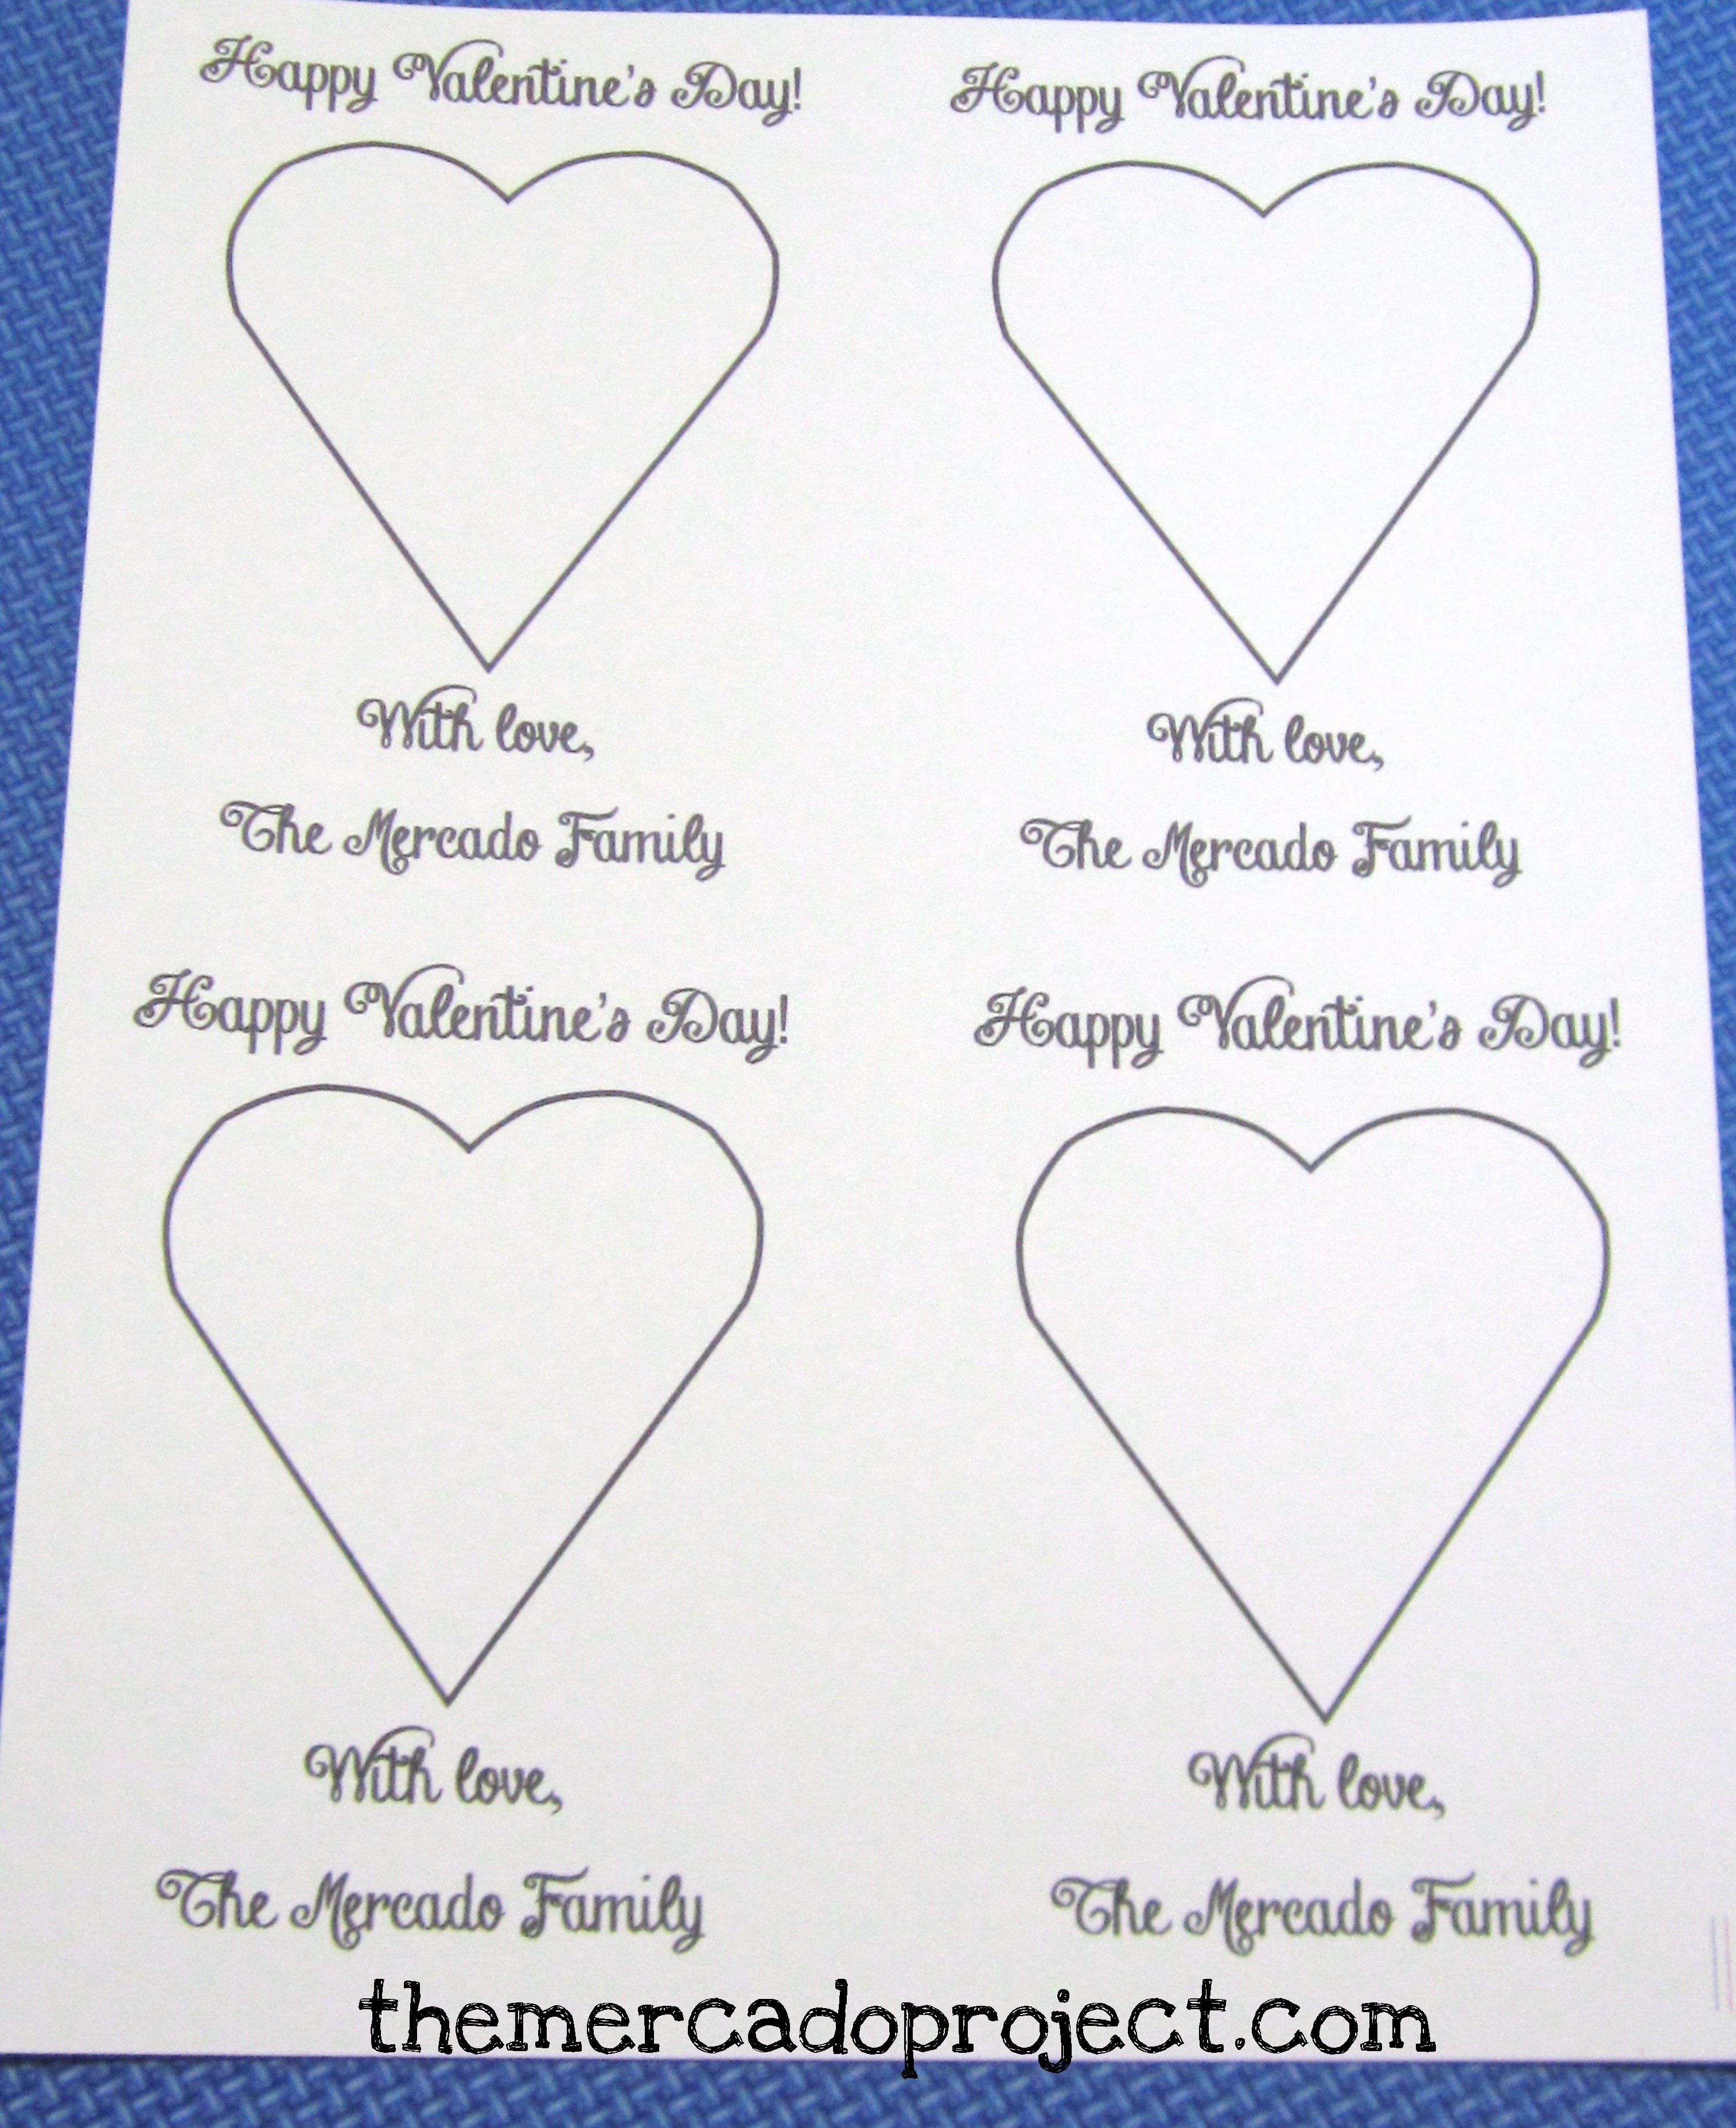 Valentines Day Borders For Microsoft Word Using microsoft word, i made ...